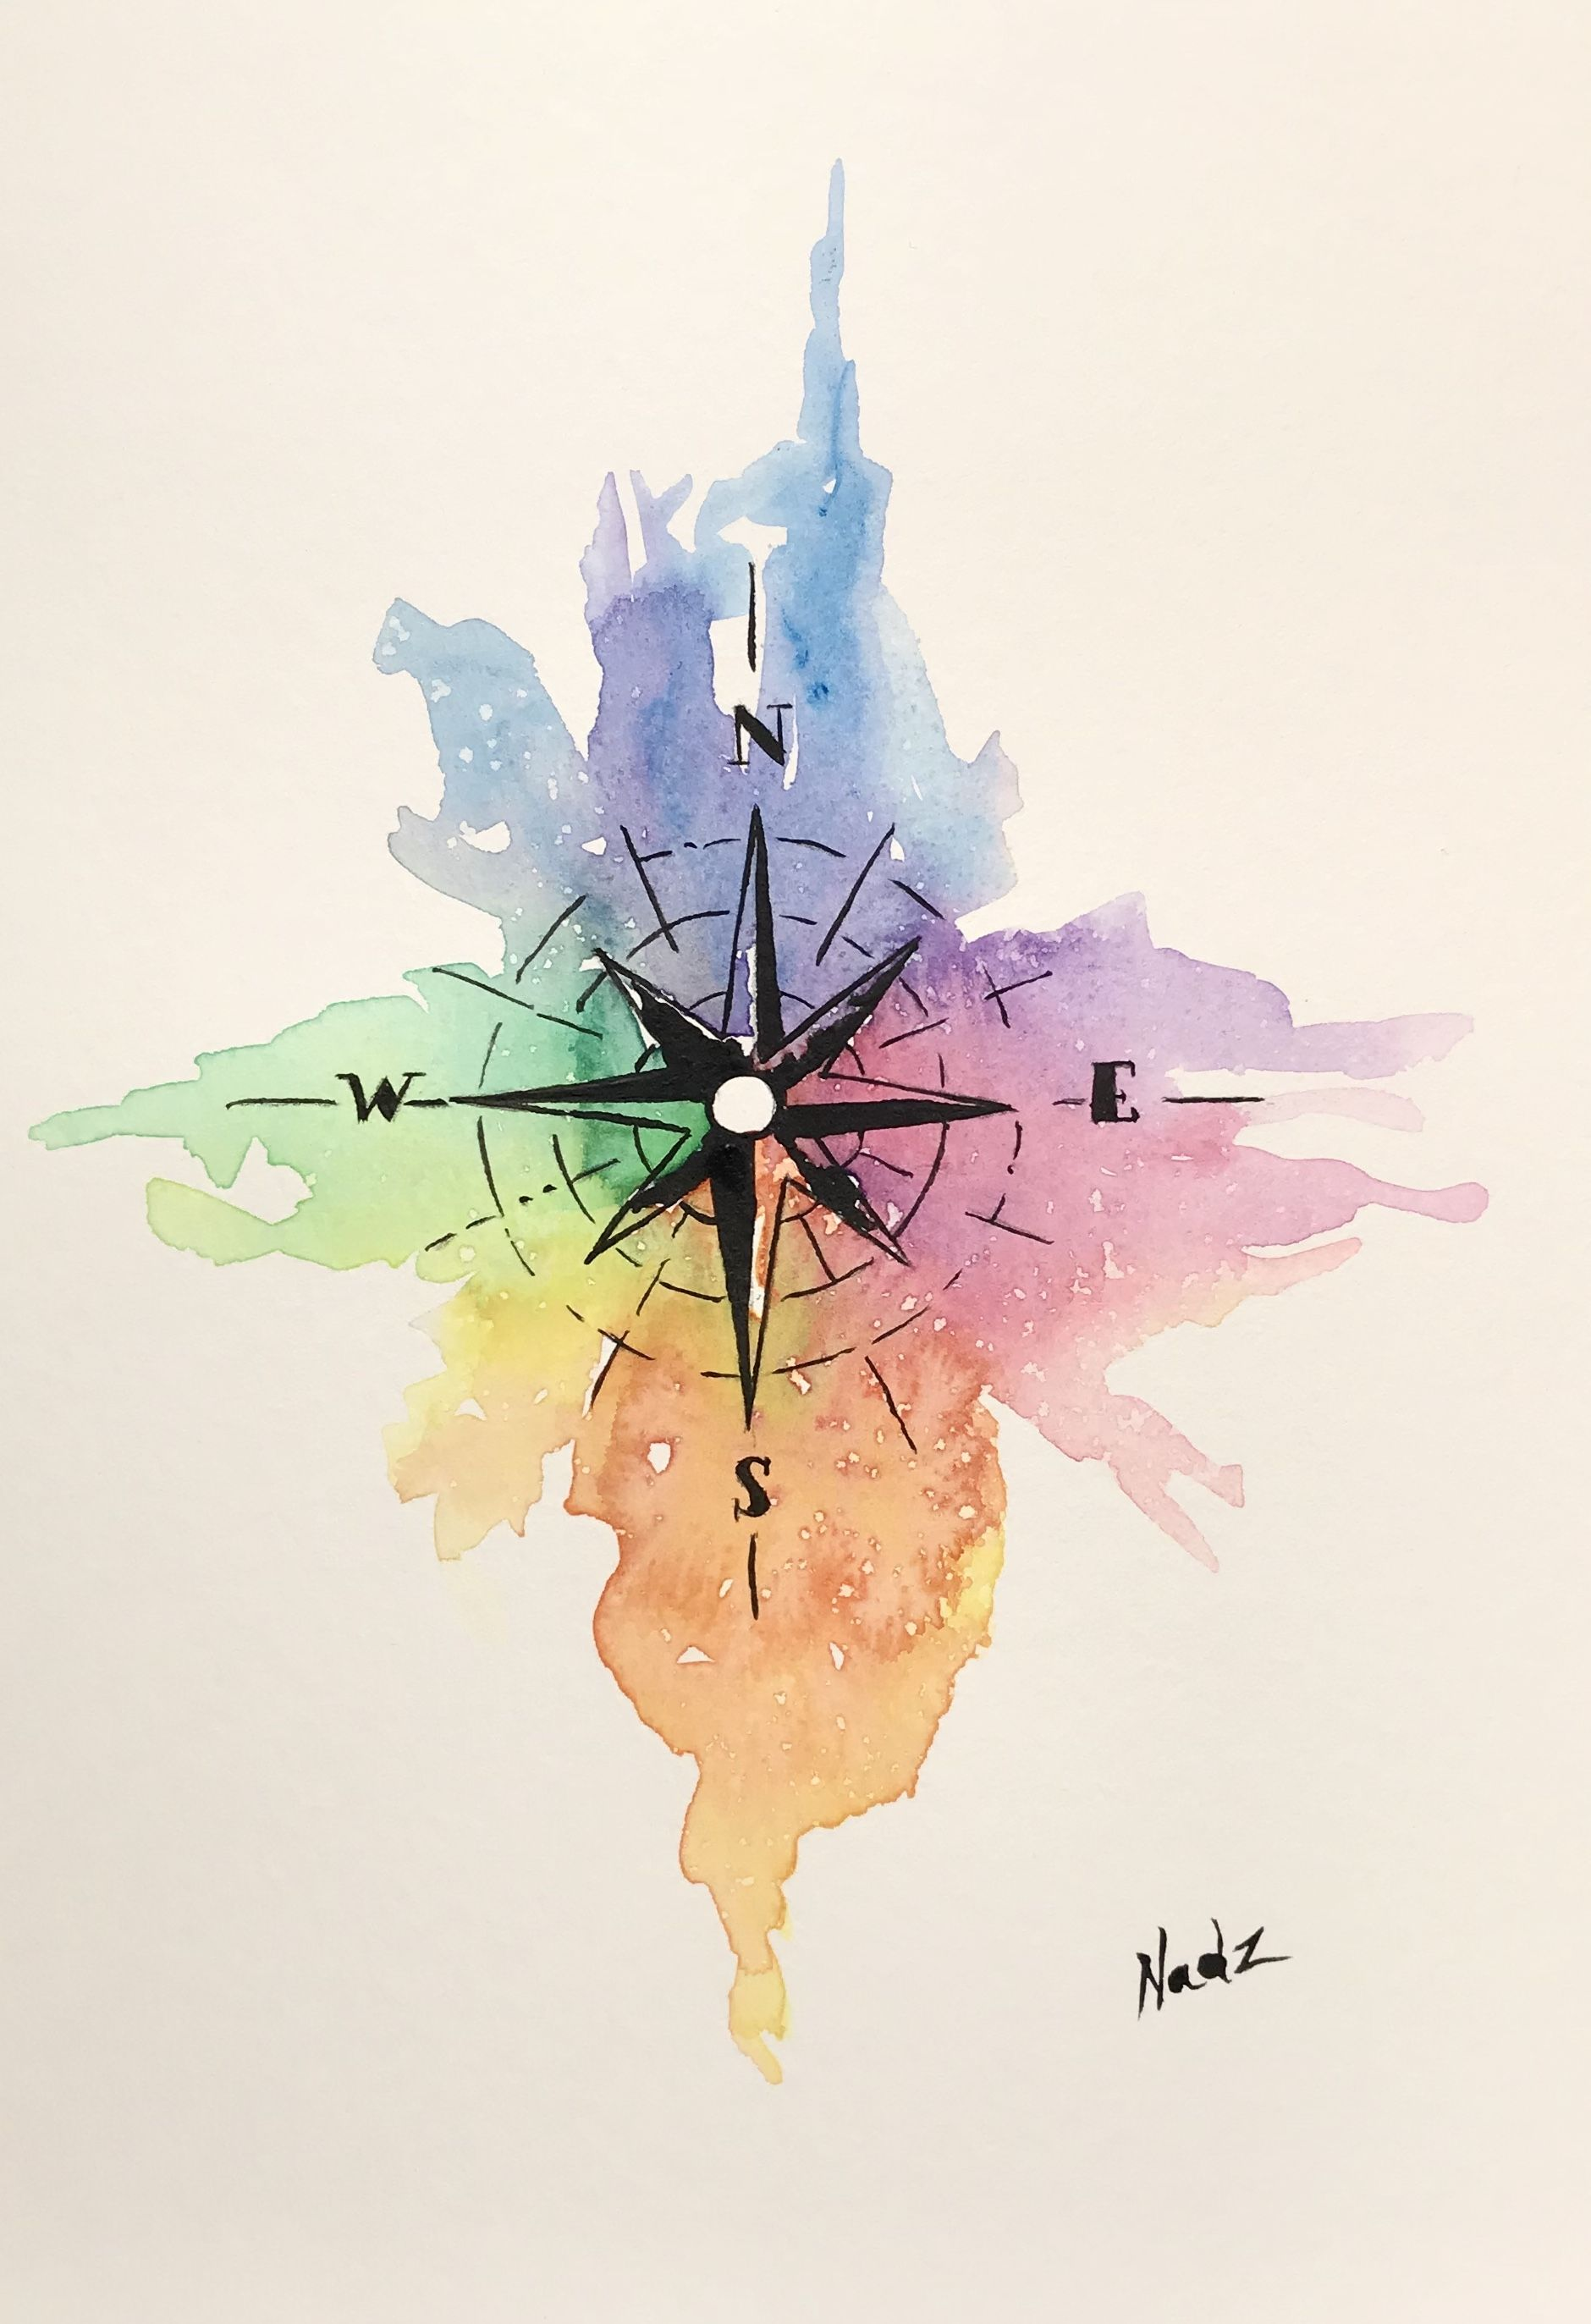 Watercolor Painting Etsy Compass Gift Idea Peinture De